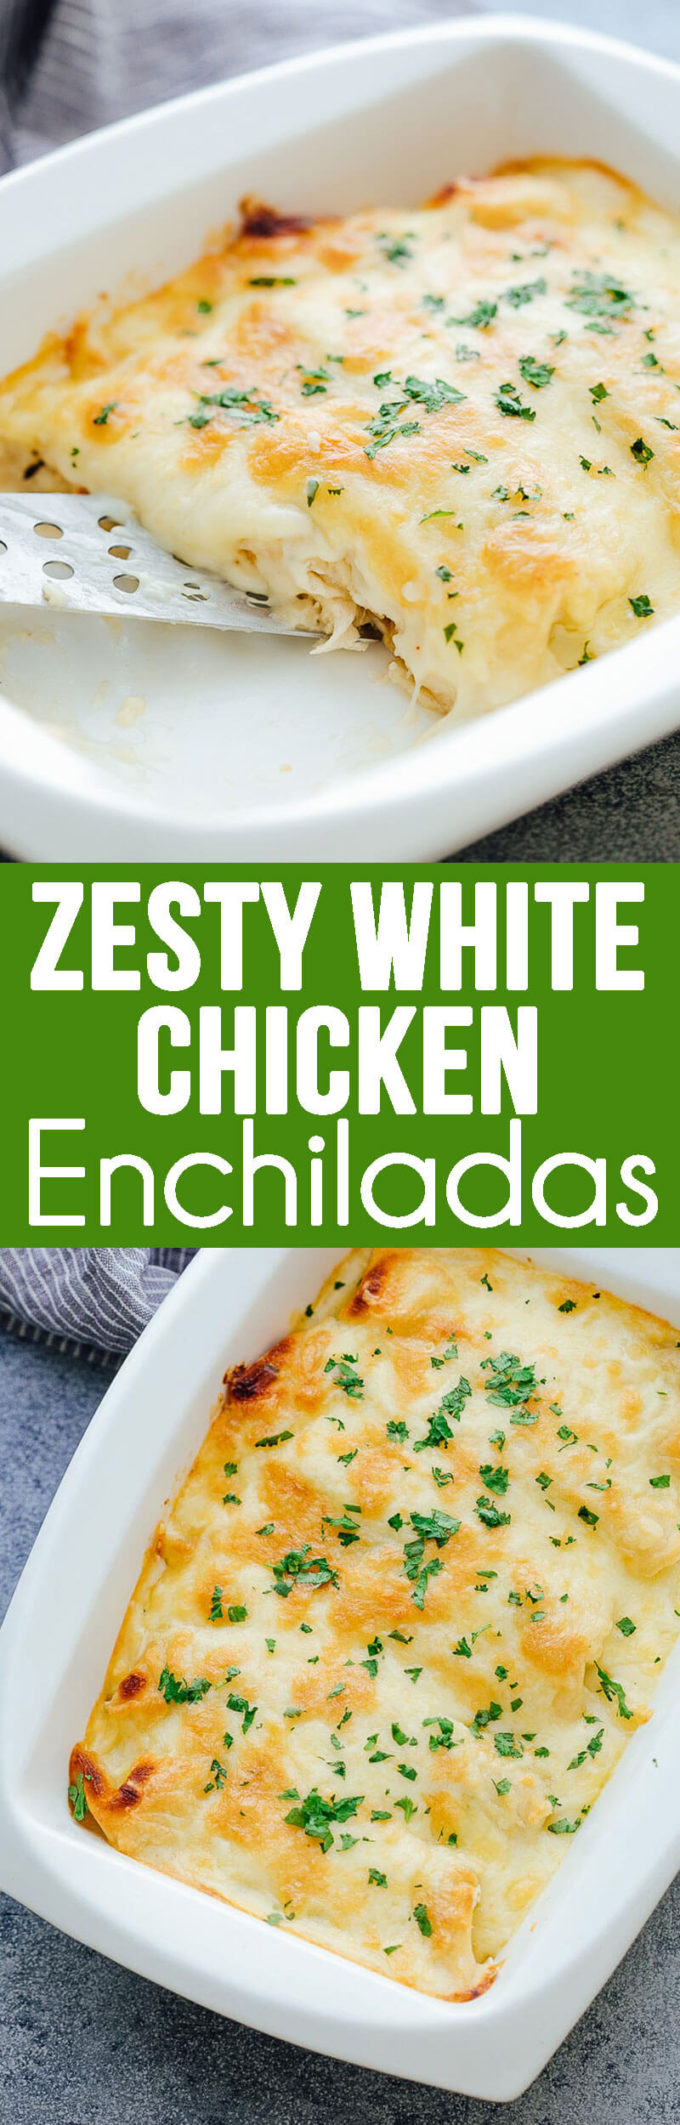 Zesty White Chicken Enchiladas, delicious and easy enchiladas.